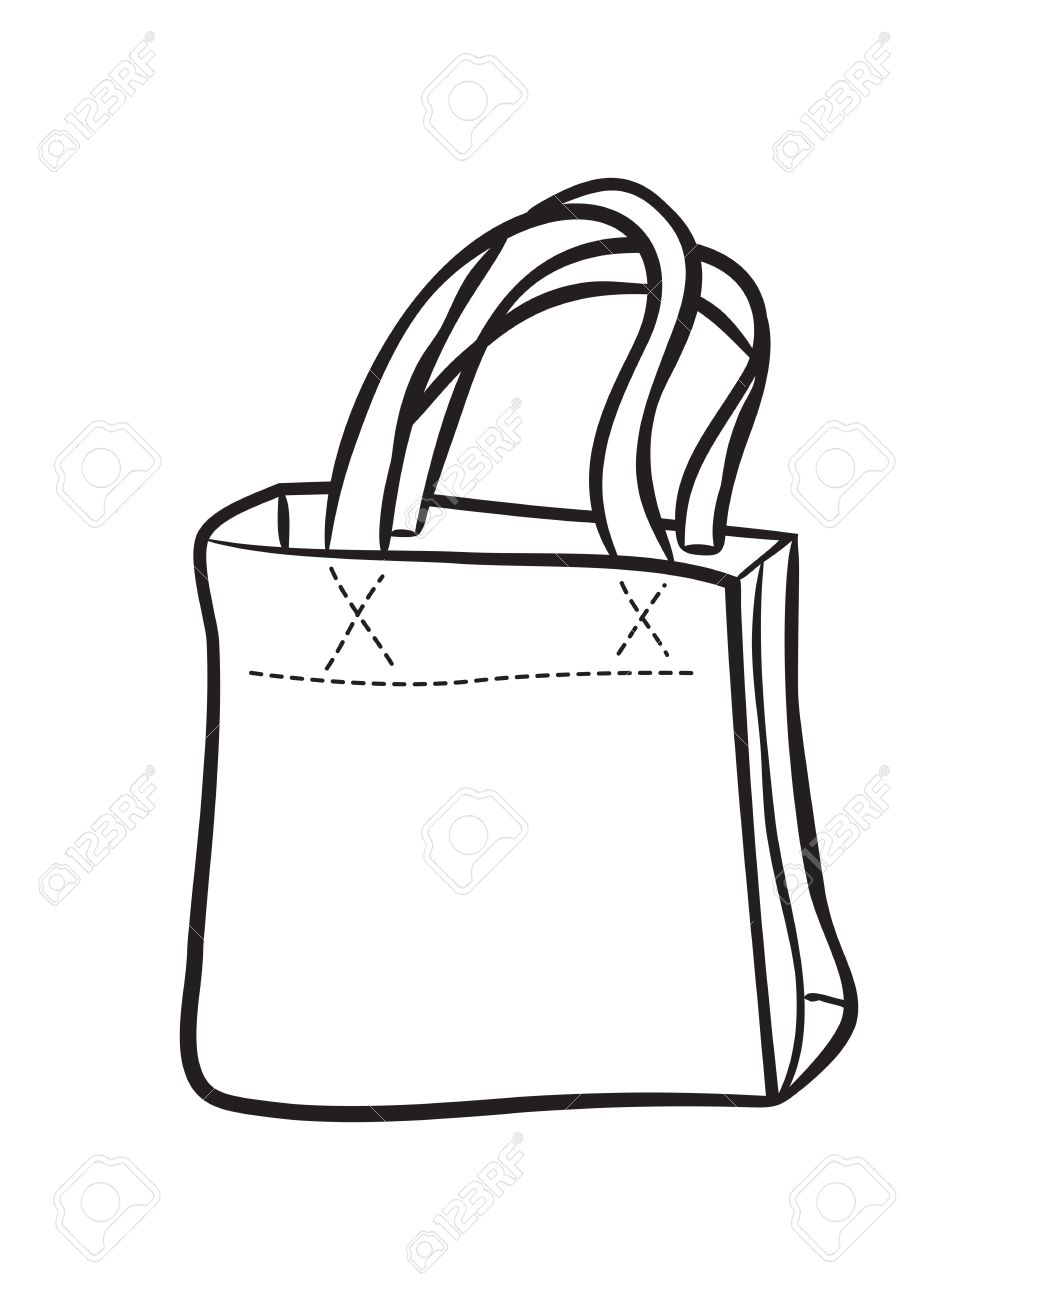 Shopping Bag Drawing At Getdrawings